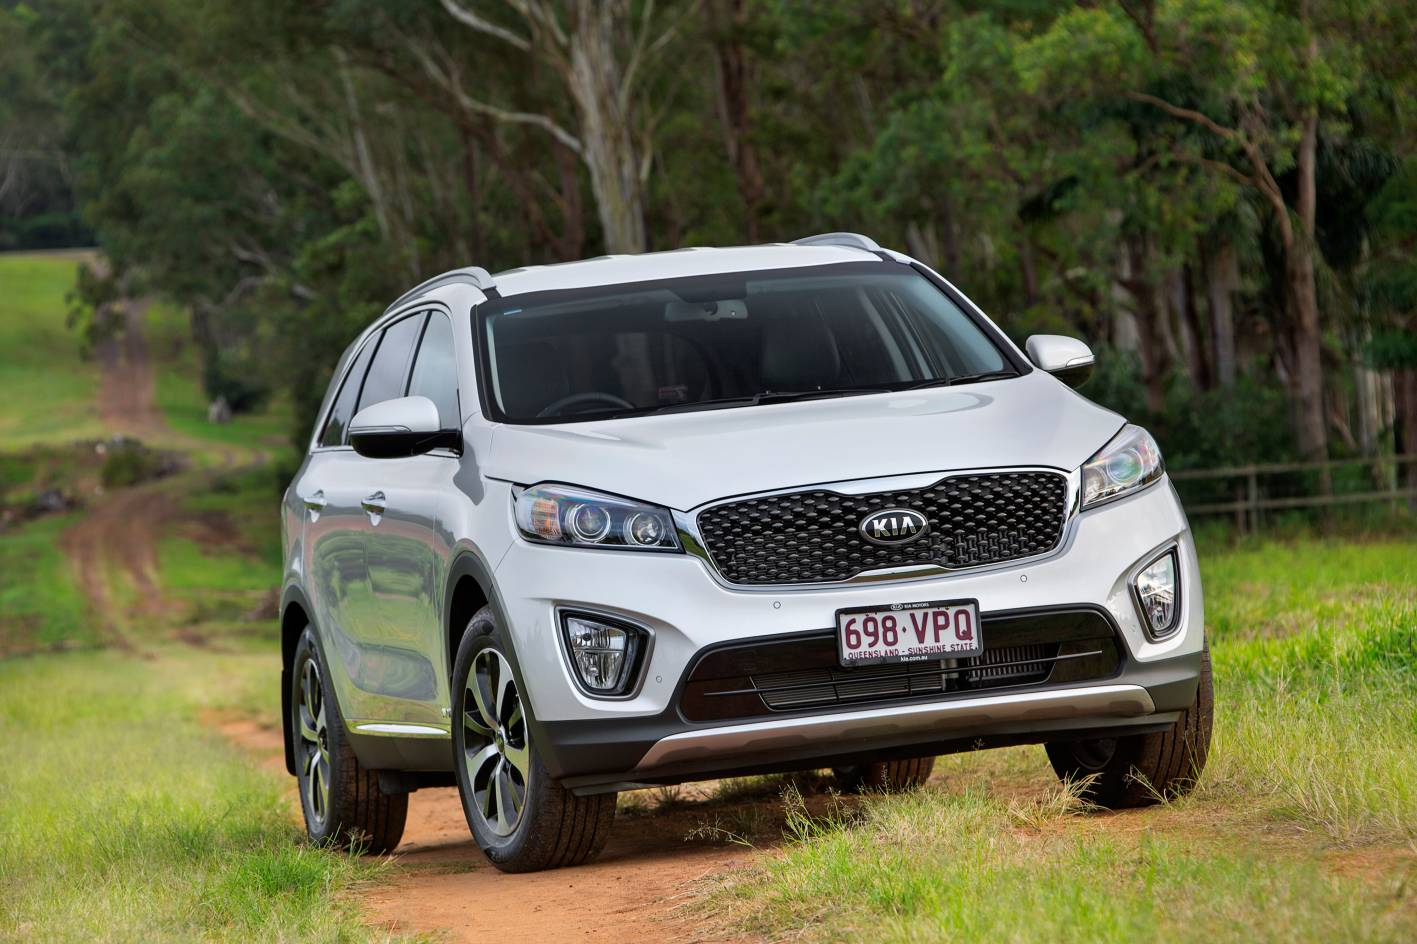 kia cars news 2015 kia sorento pricing and specification. Black Bedroom Furniture Sets. Home Design Ideas